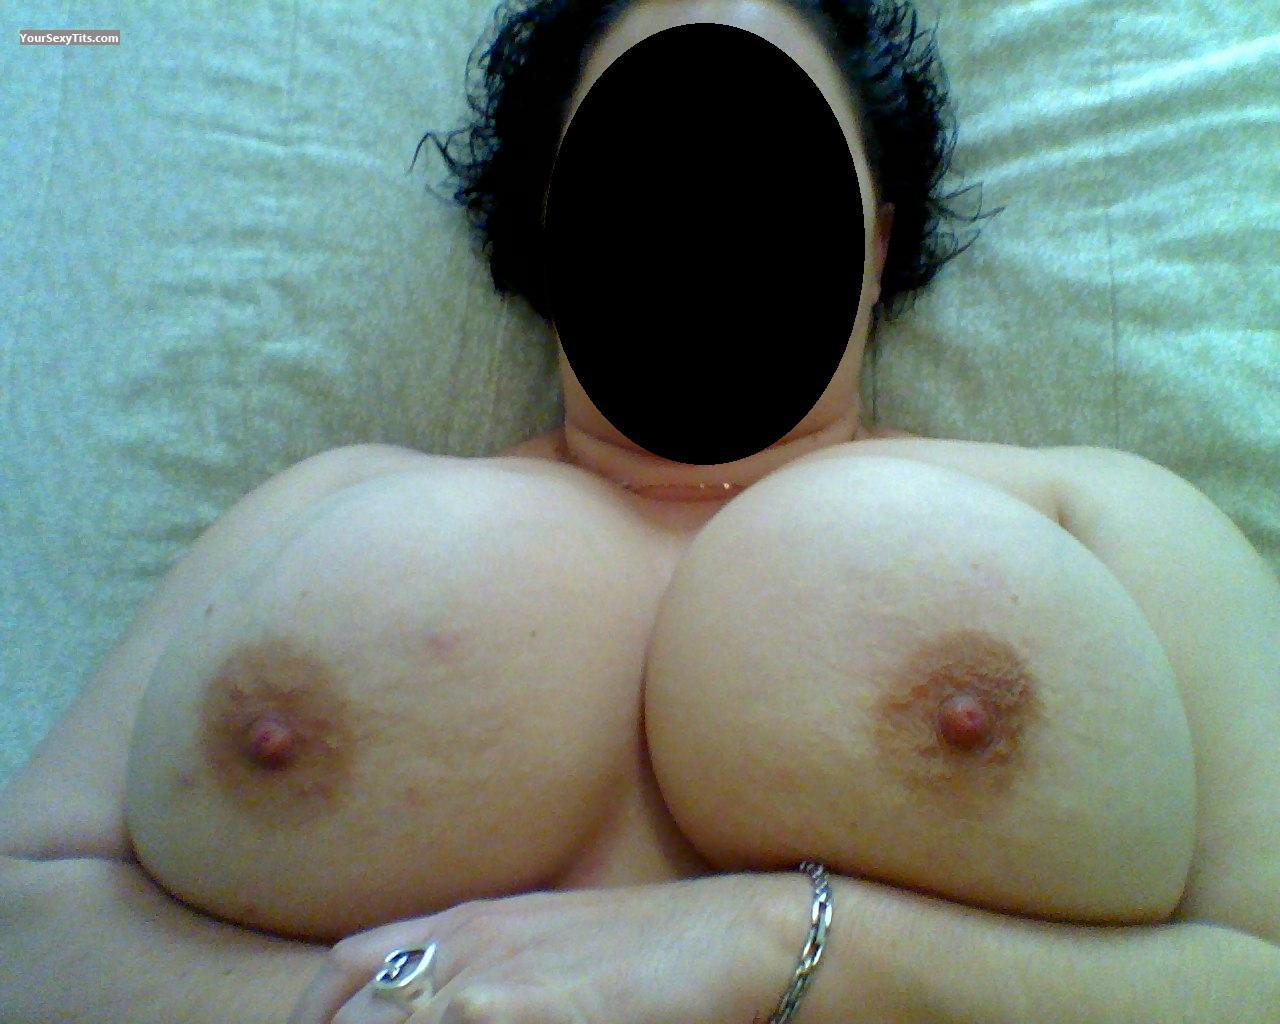 Very big Tits Of My Ex-Wife Brrrrrrr